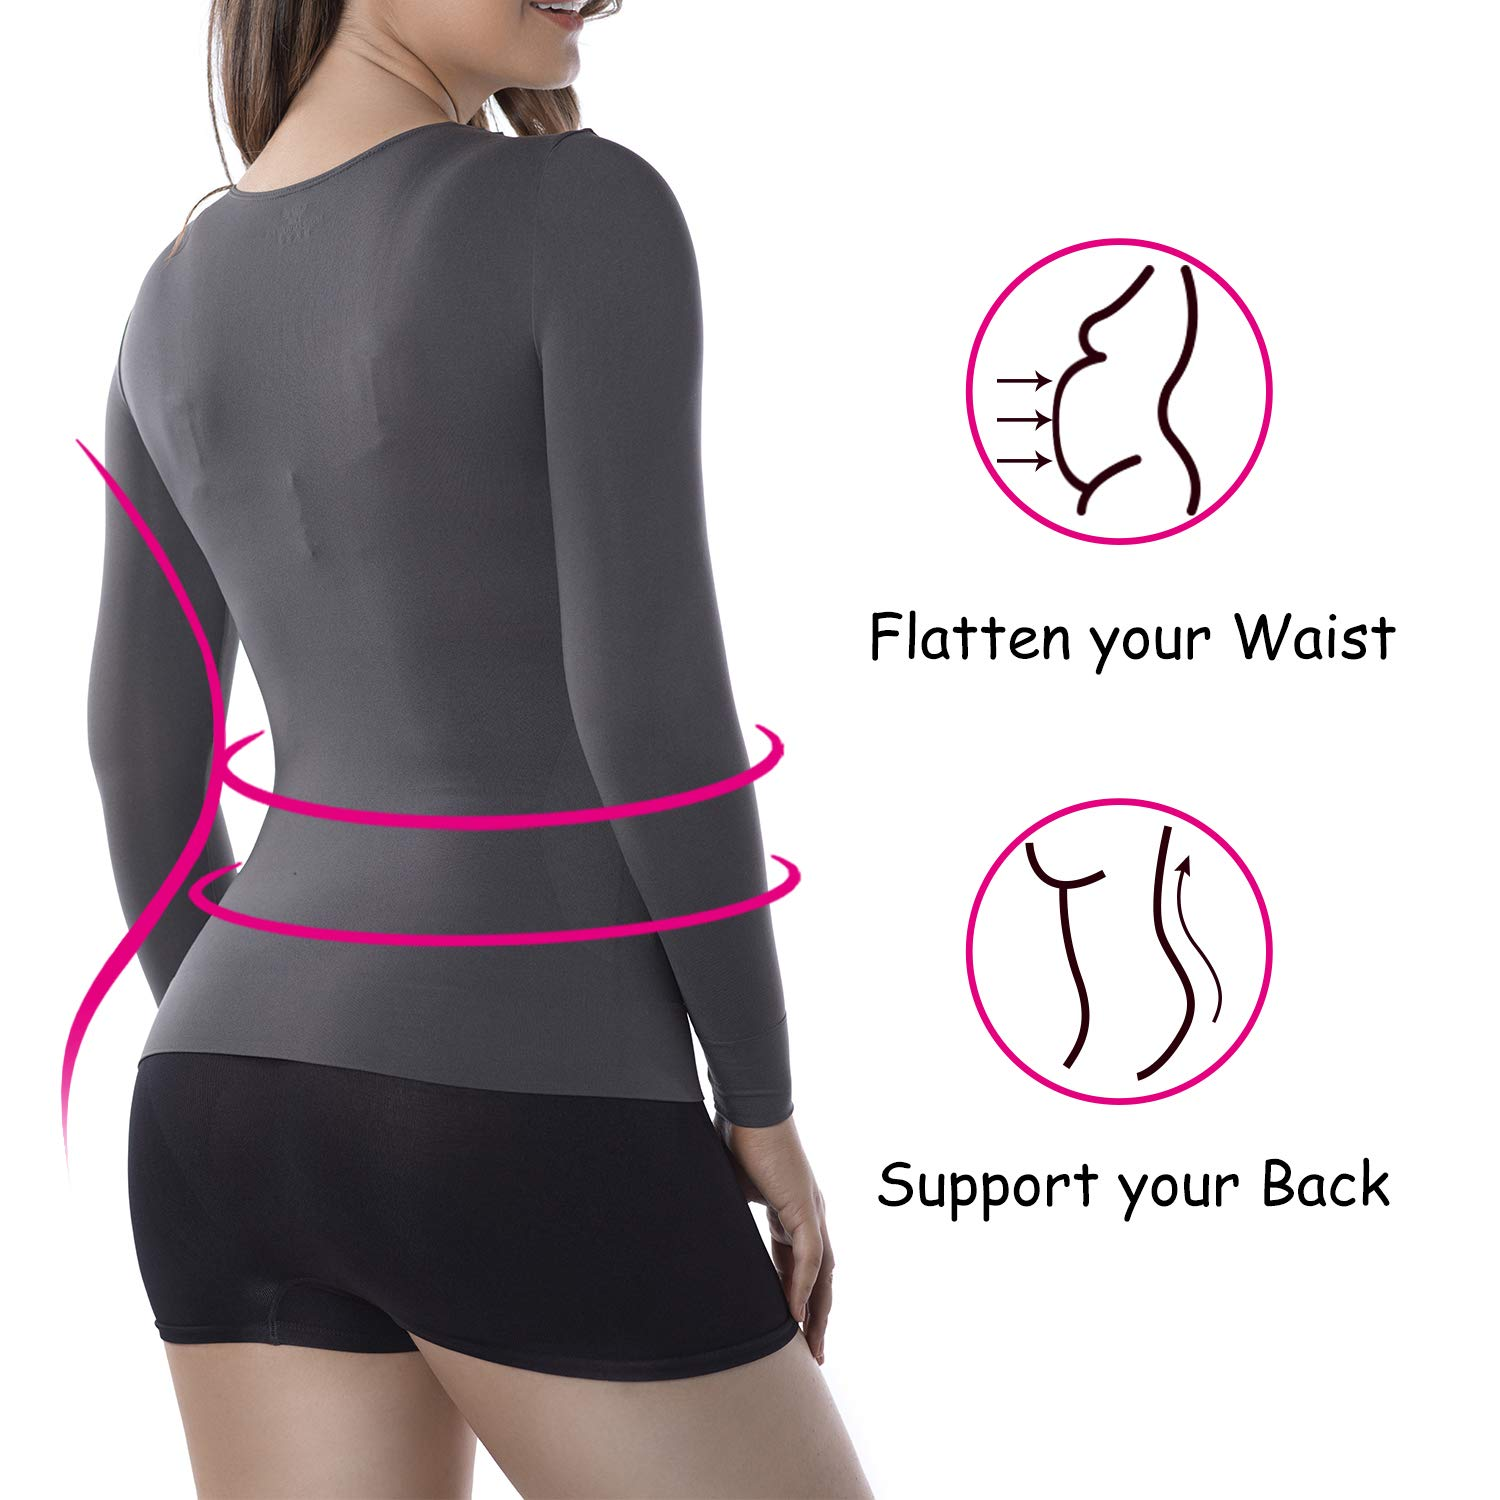 +MD Women Compression Slimming Undershirt Tops Long Sleeve V-Neck T-Shirt for Tummy Waist and Bust Shapewear